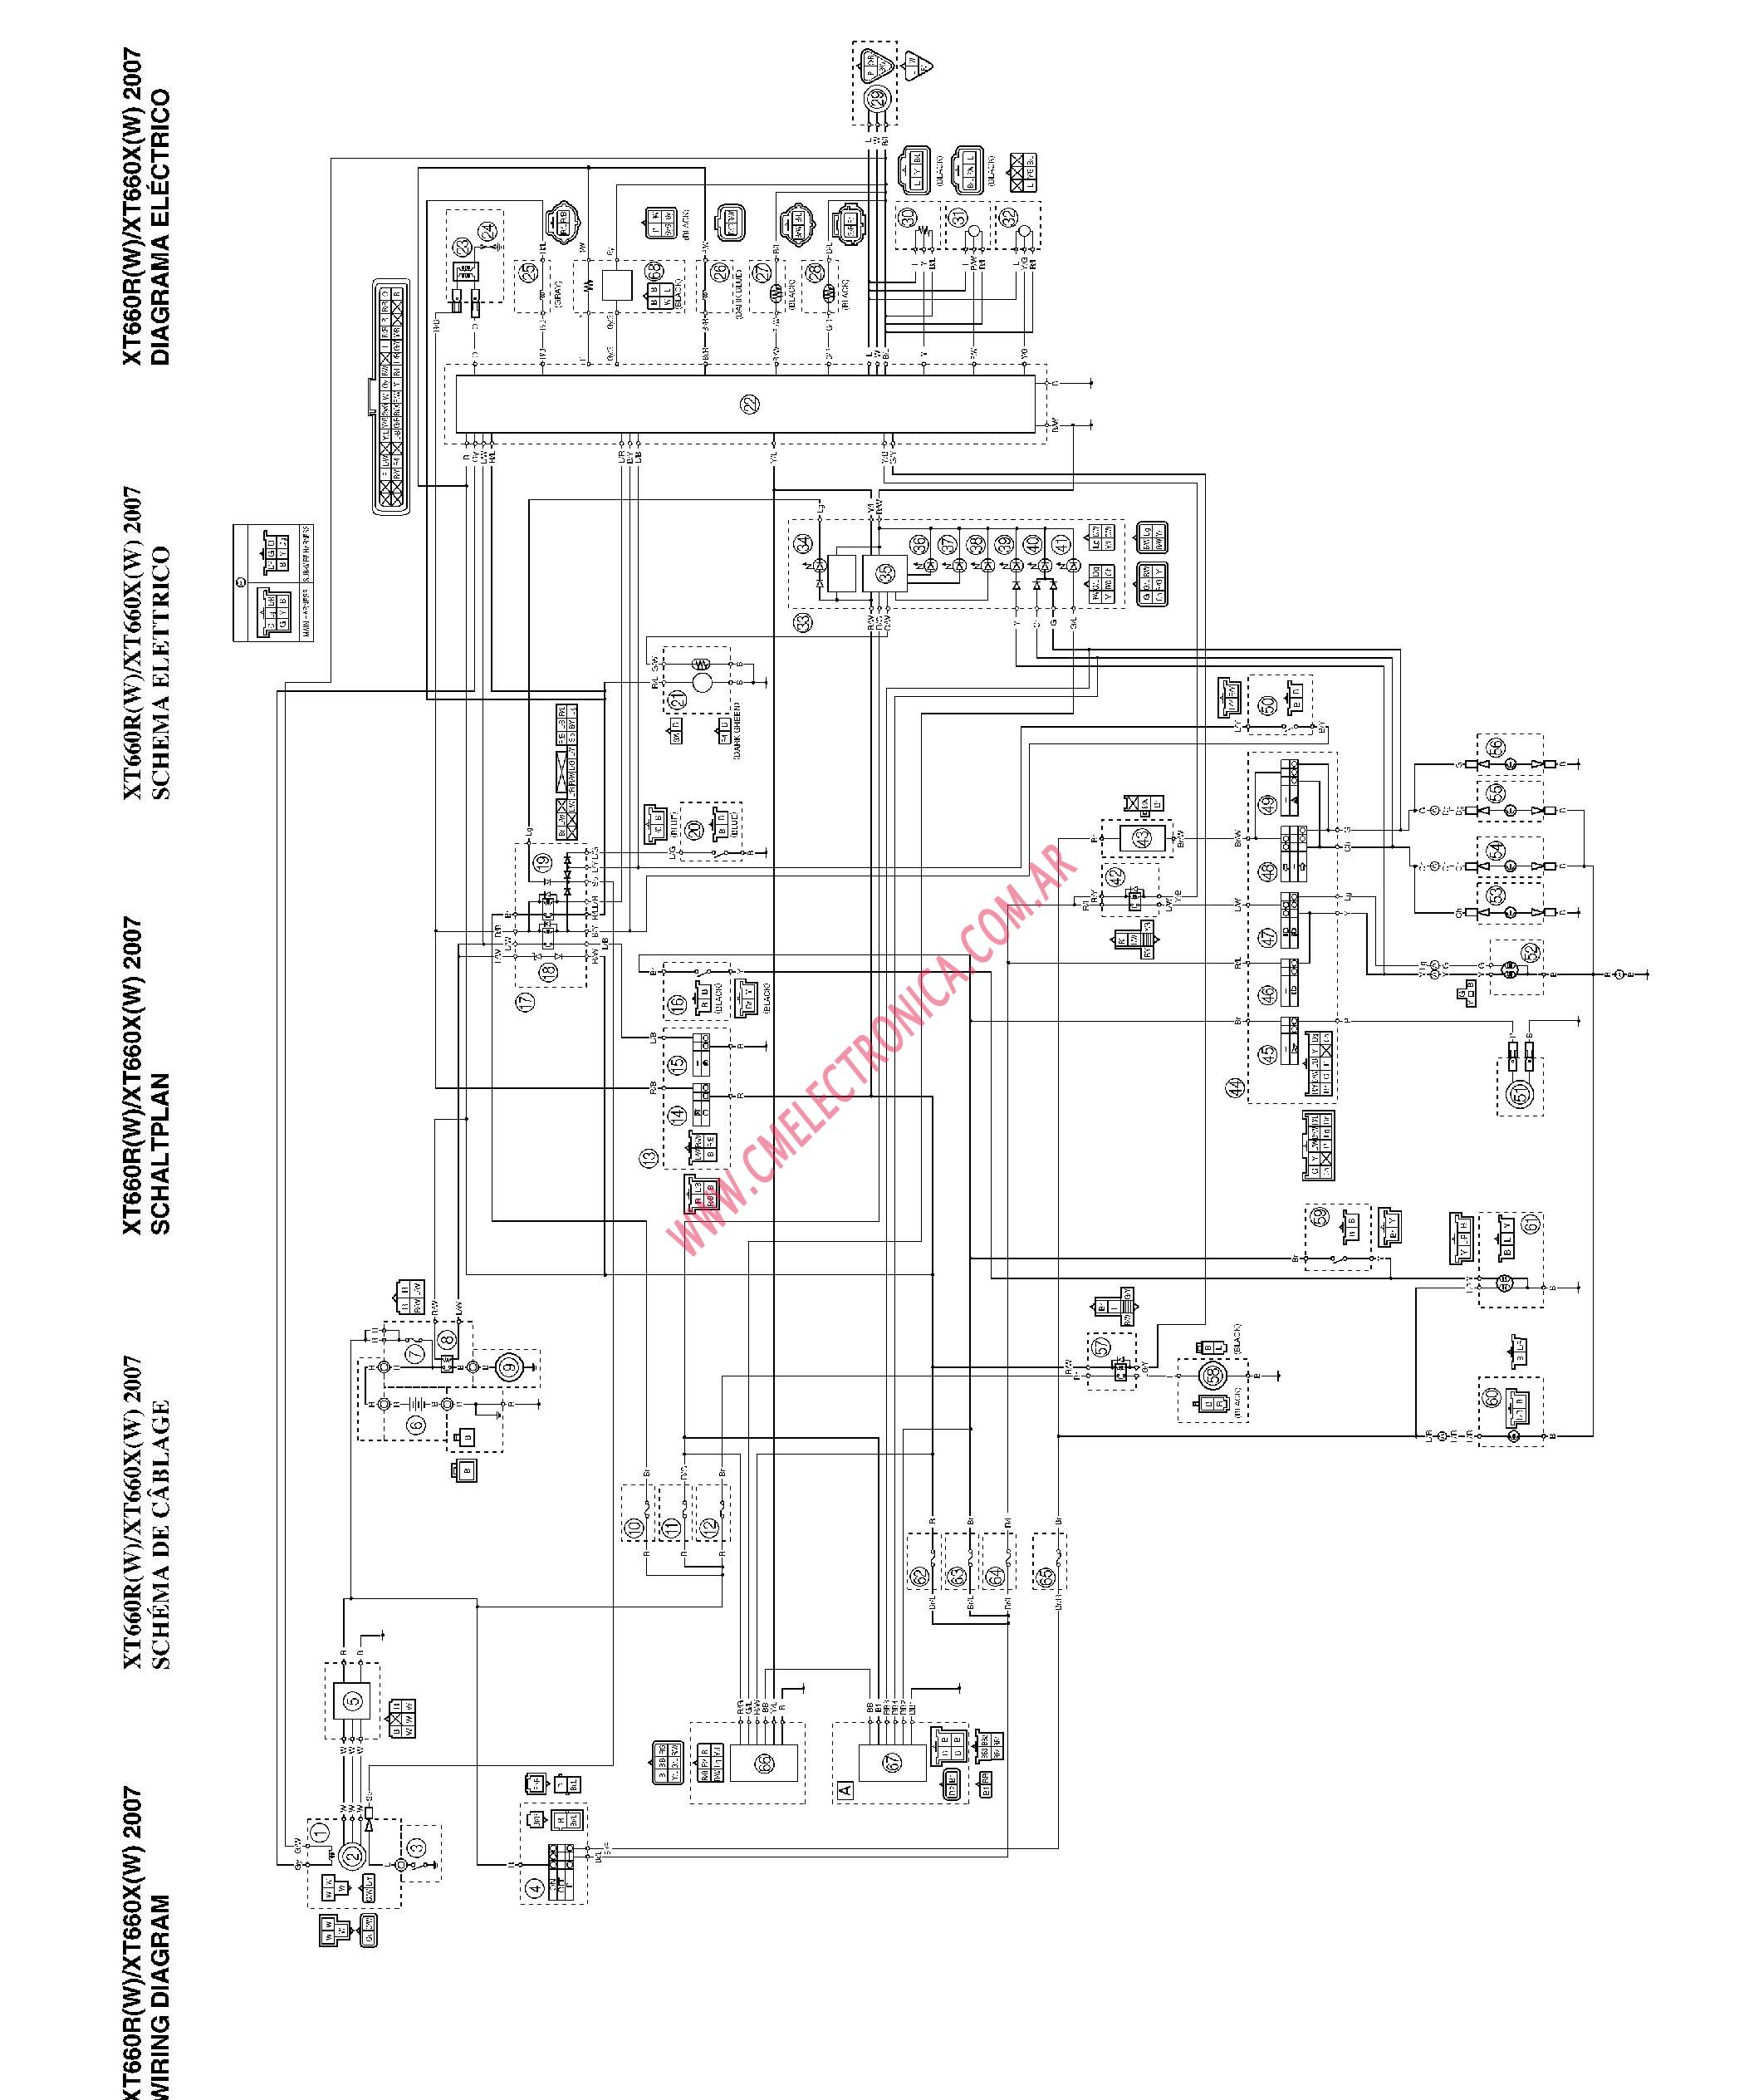 vbb wiring diagram schematic diagrams vespa p125x wiring diagram vespa vbb wiring diagram [ 2100 x 2528 Pixel ]